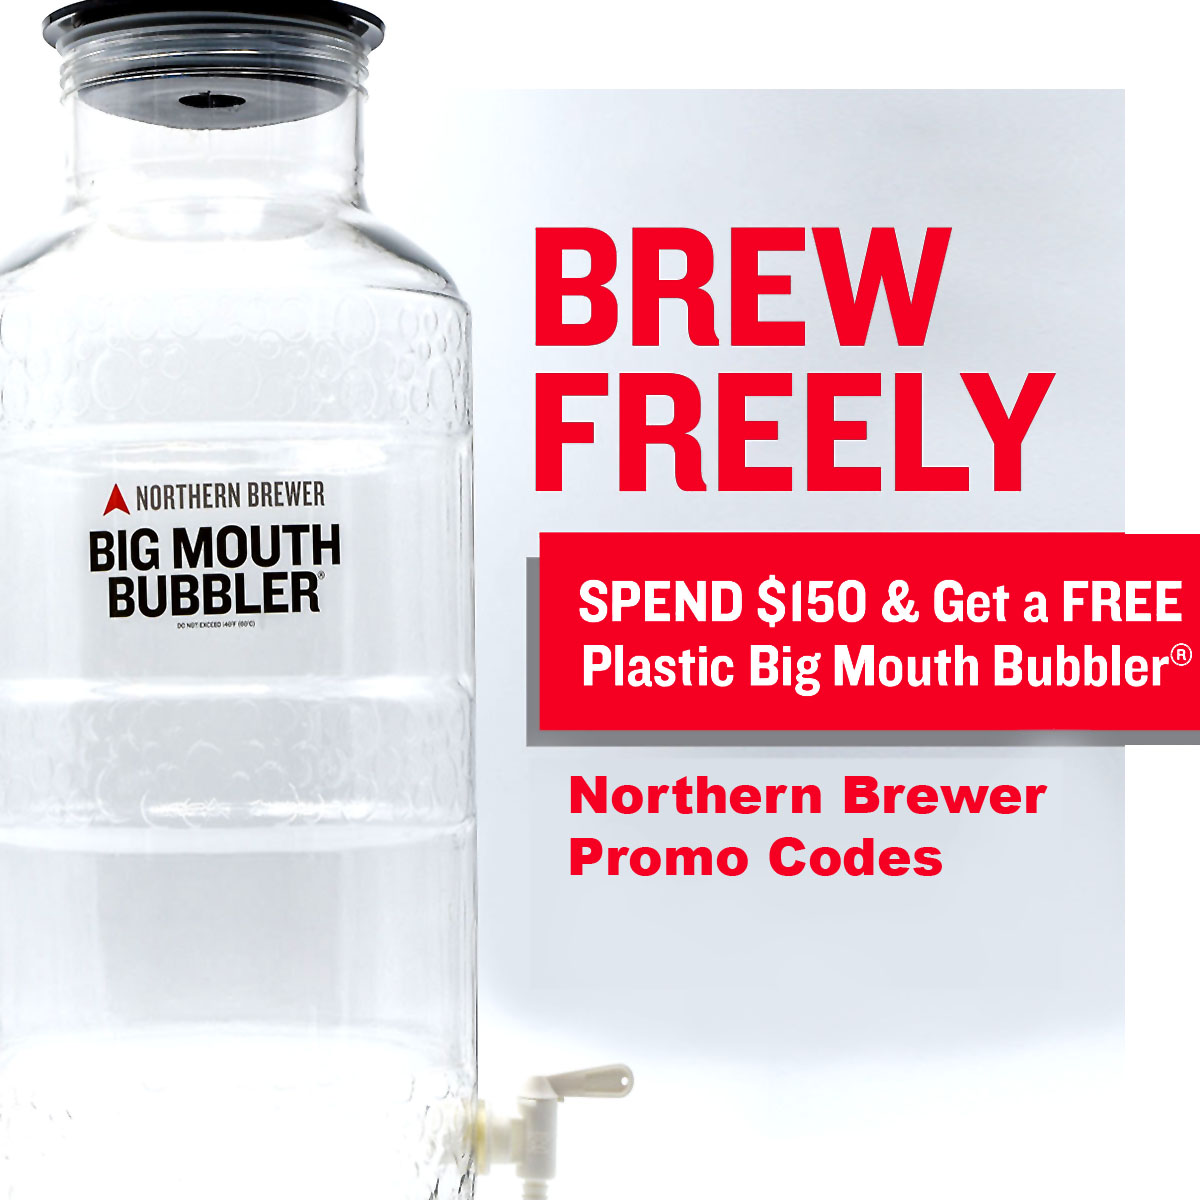 Get a Free Big Mouth Fermenter with this Northern Brewer Coupon